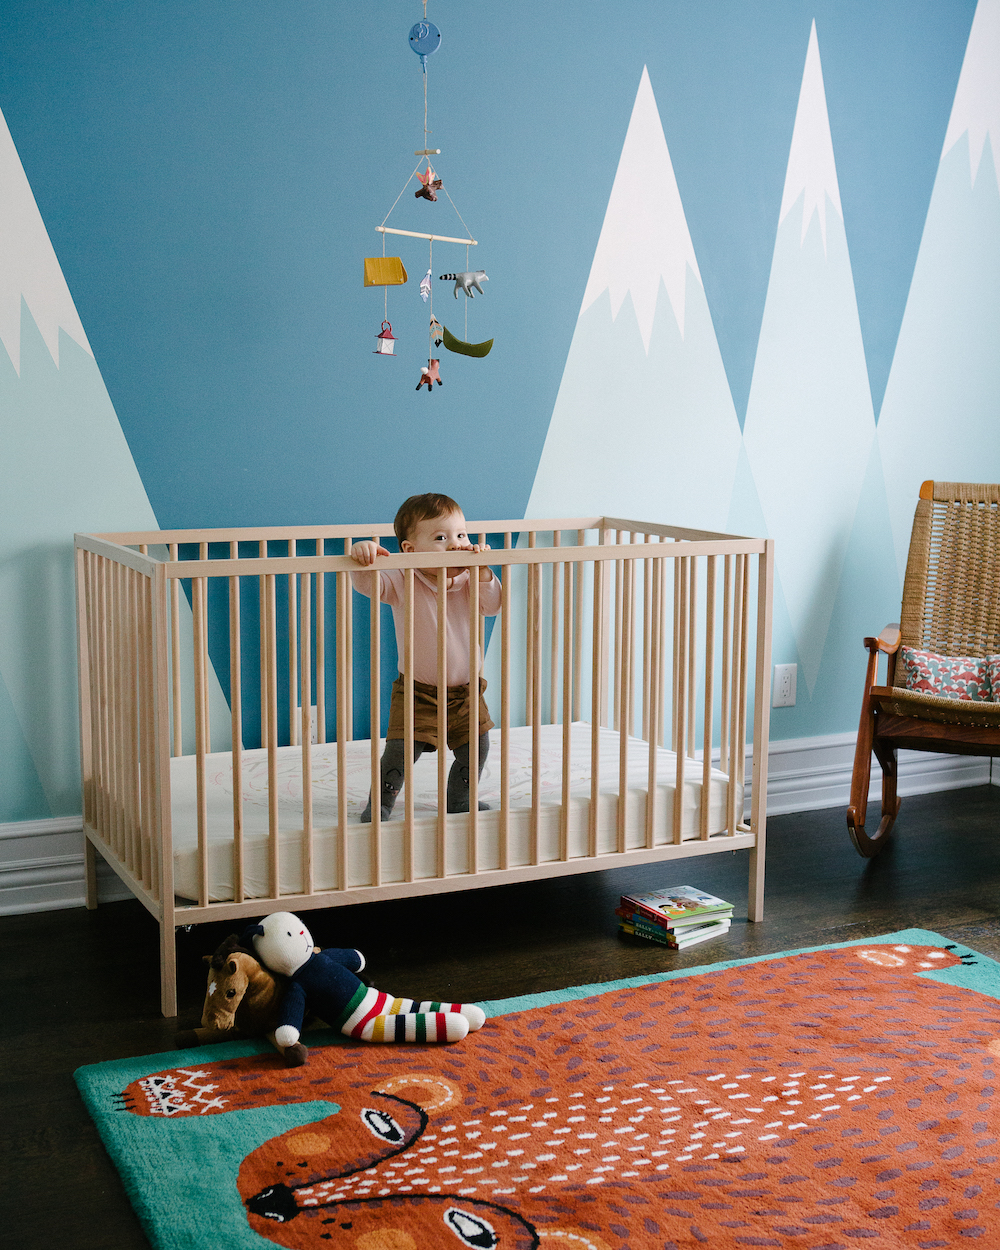 Happy murals, bright (but not too bright) colors, and whimsical rugs can create a safe and imaginative space for the kiddos. ( source )